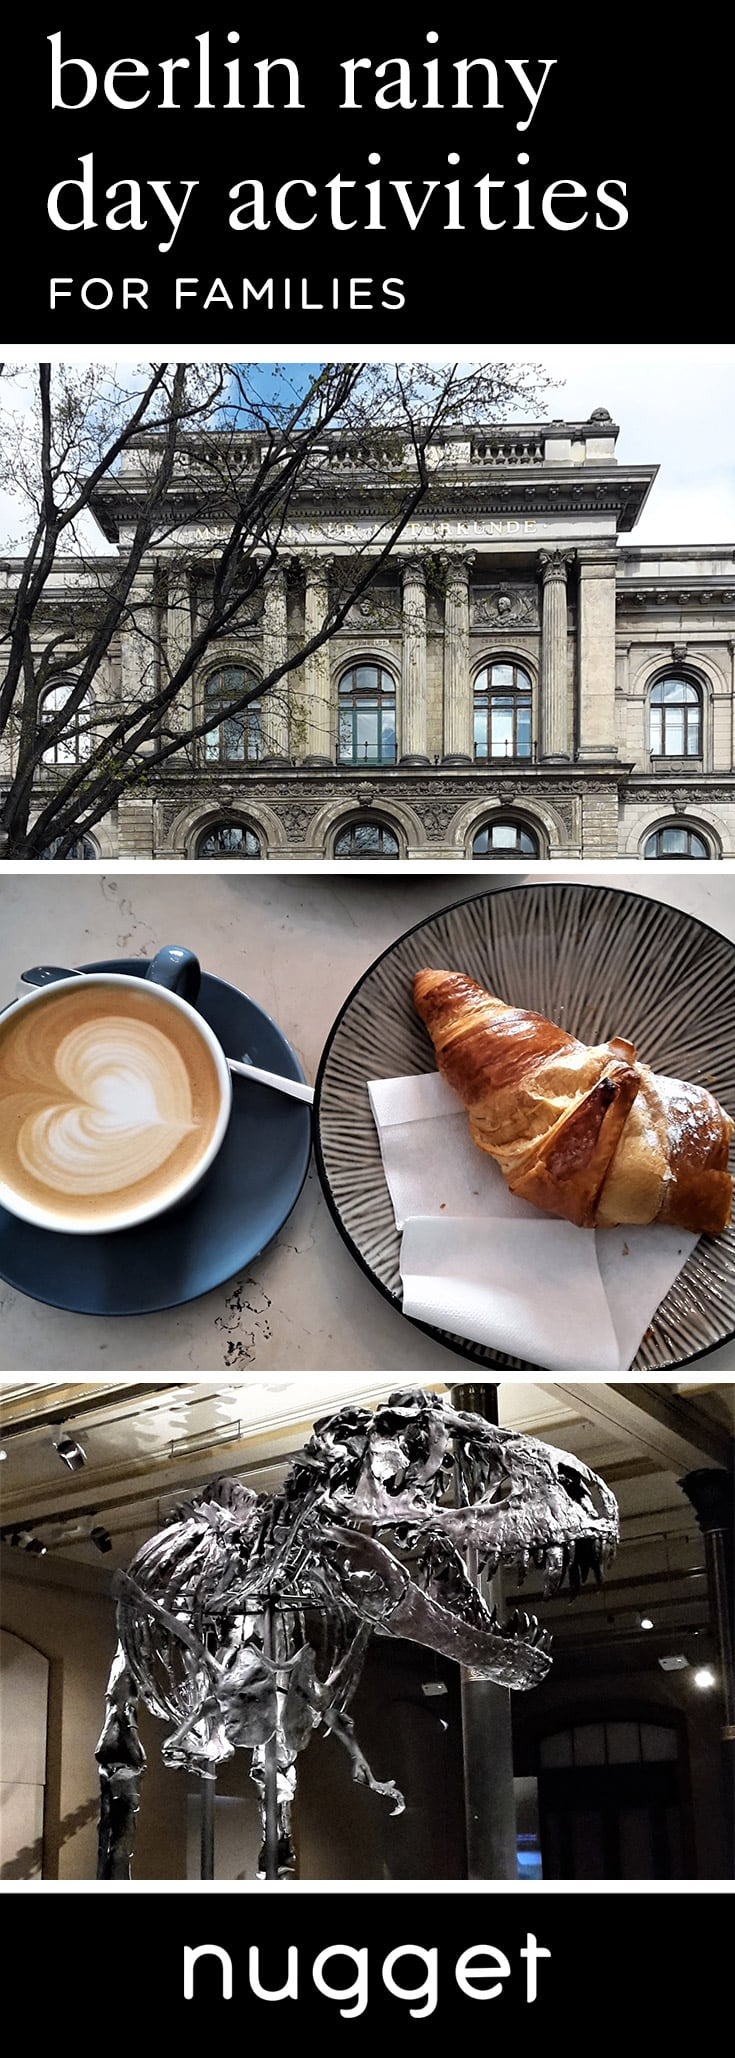 Dinosaurs and Croissants in Berlin